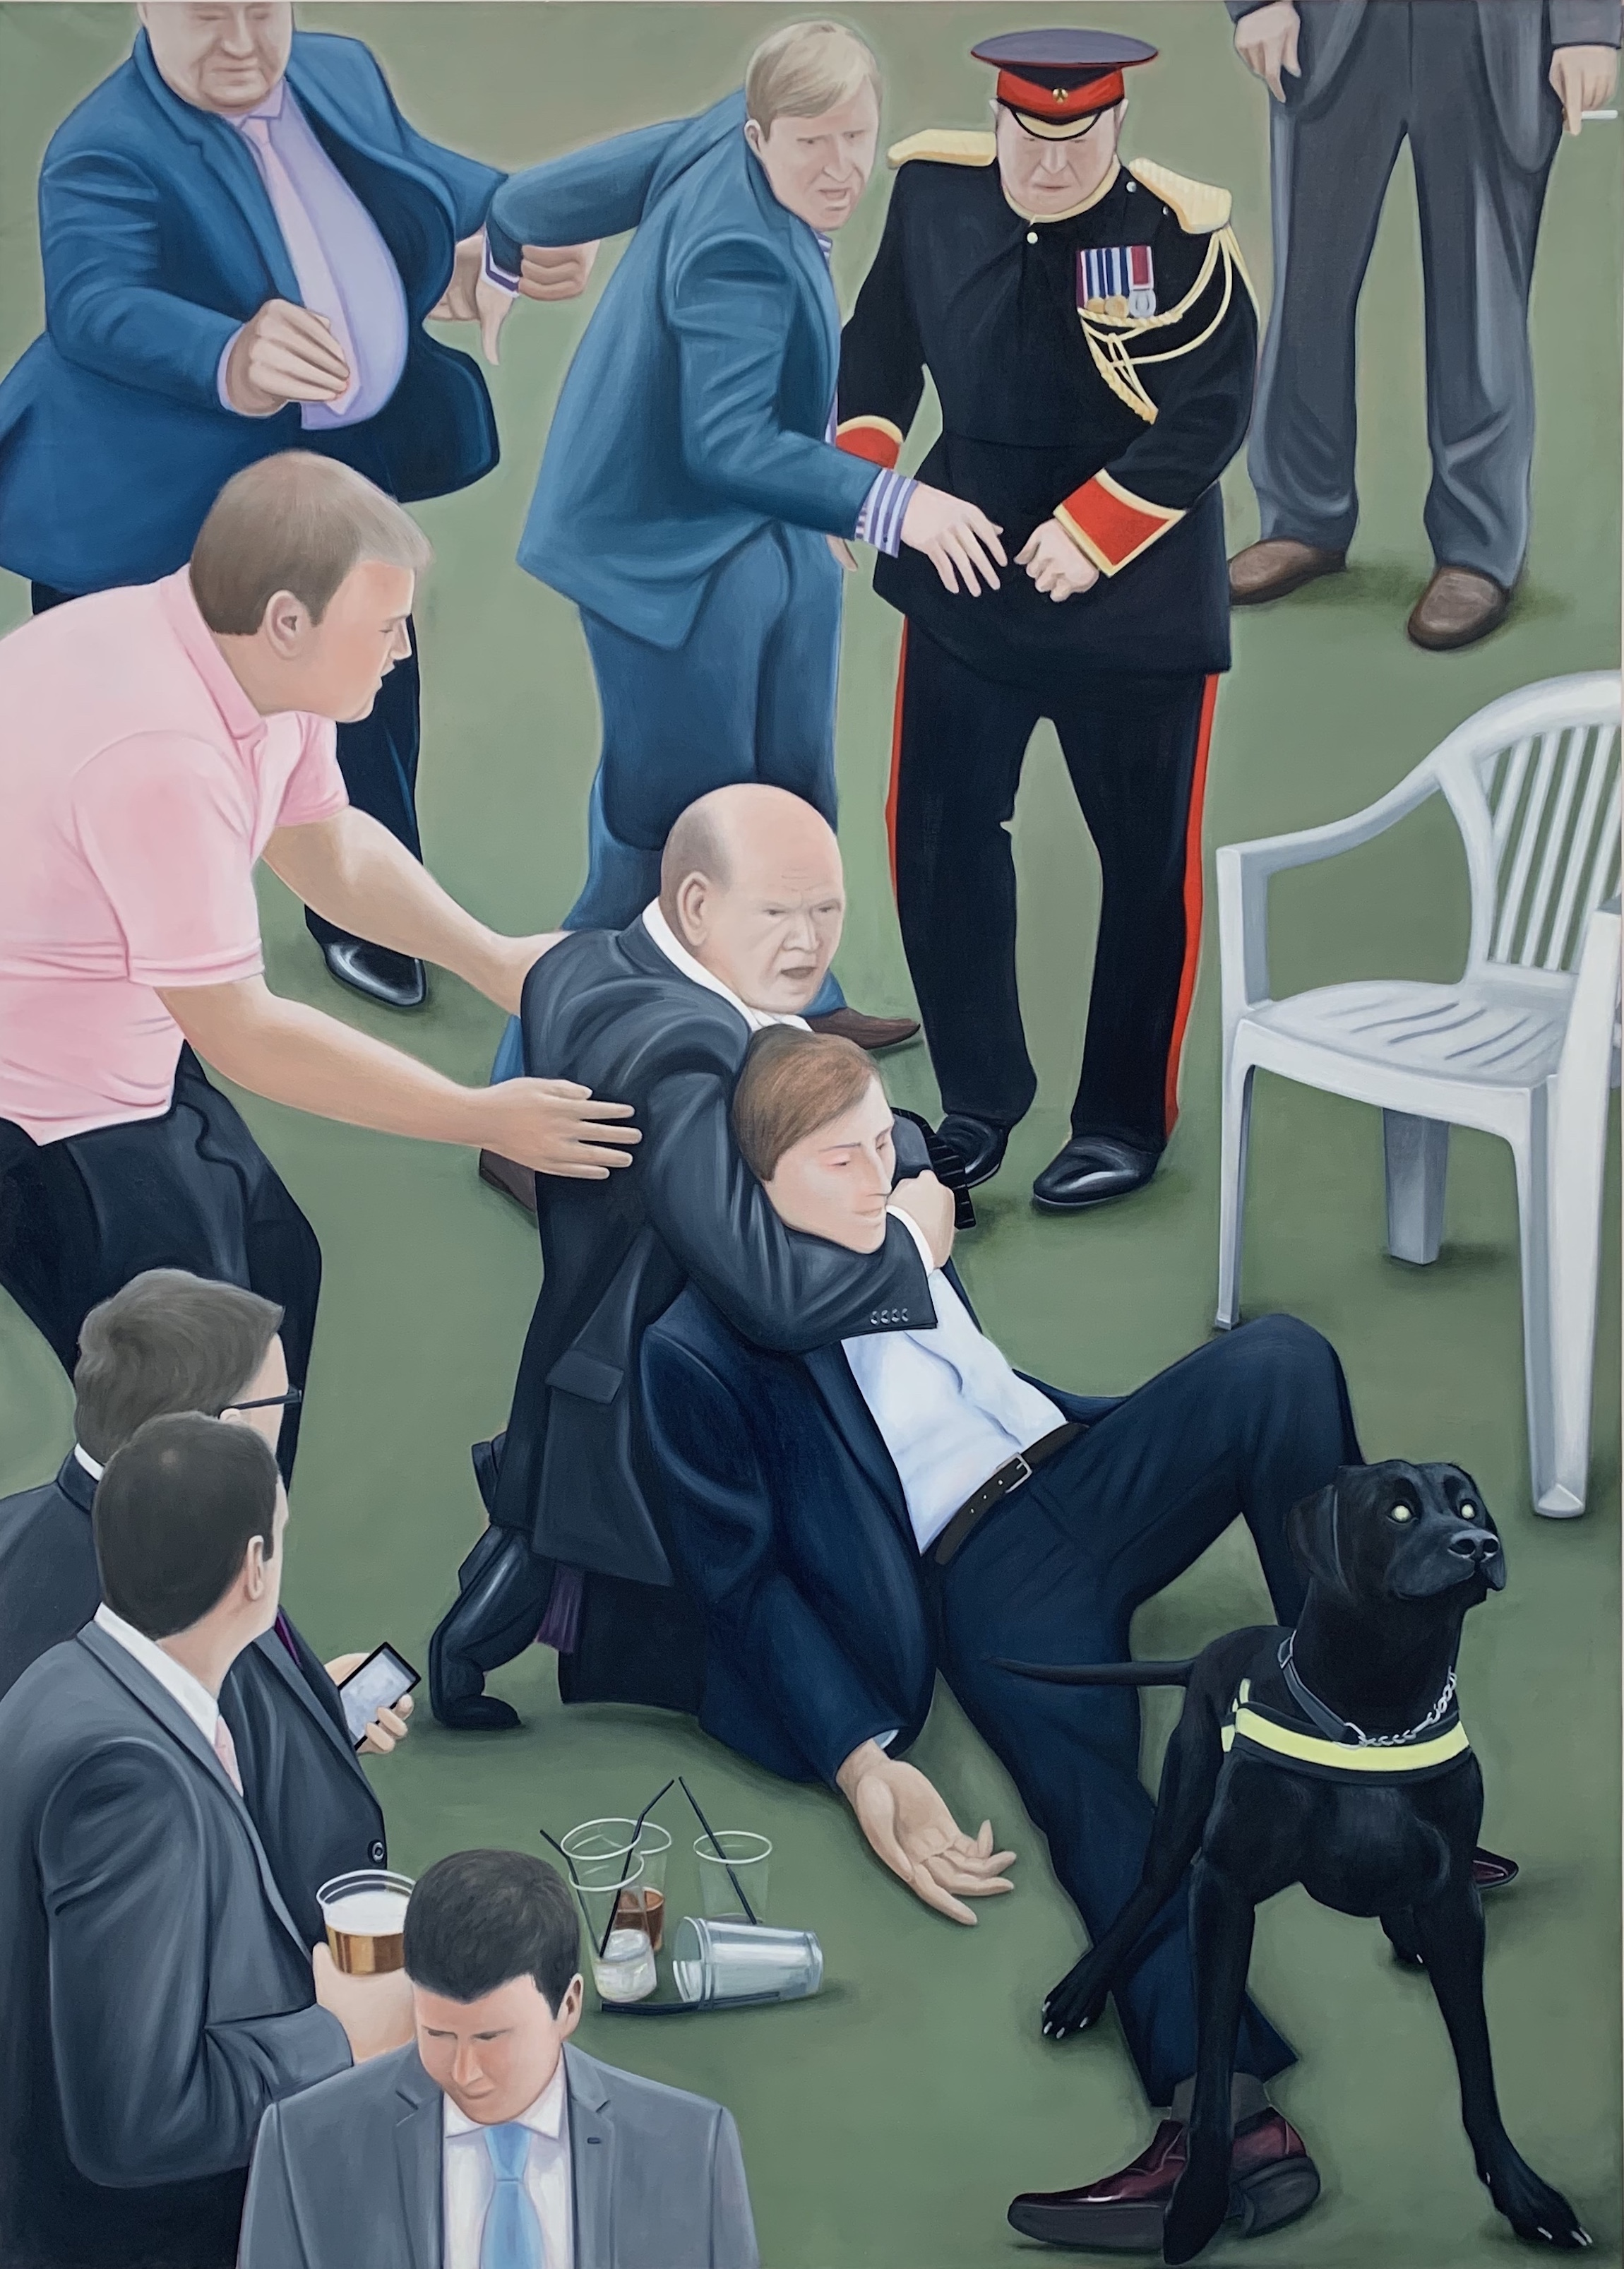 The Deposition, 2019